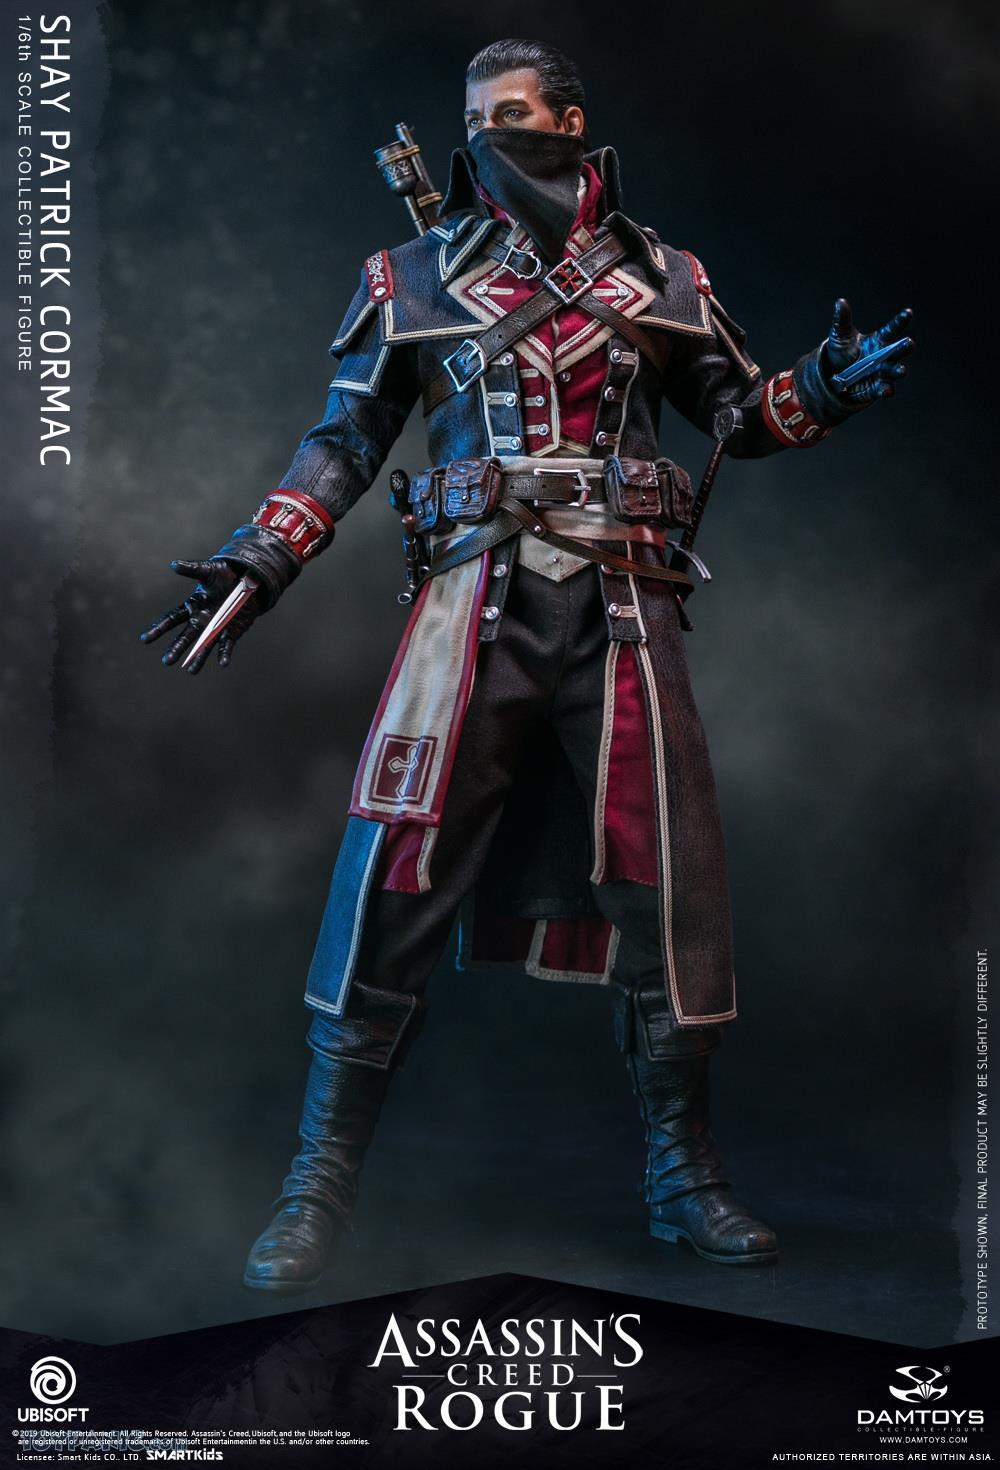 male - NEW PRODUCT: DAMTOYS: Assassins Creed Rogue - 1/6th scale Shay Patrick Cormac Collectible Figure 82220111